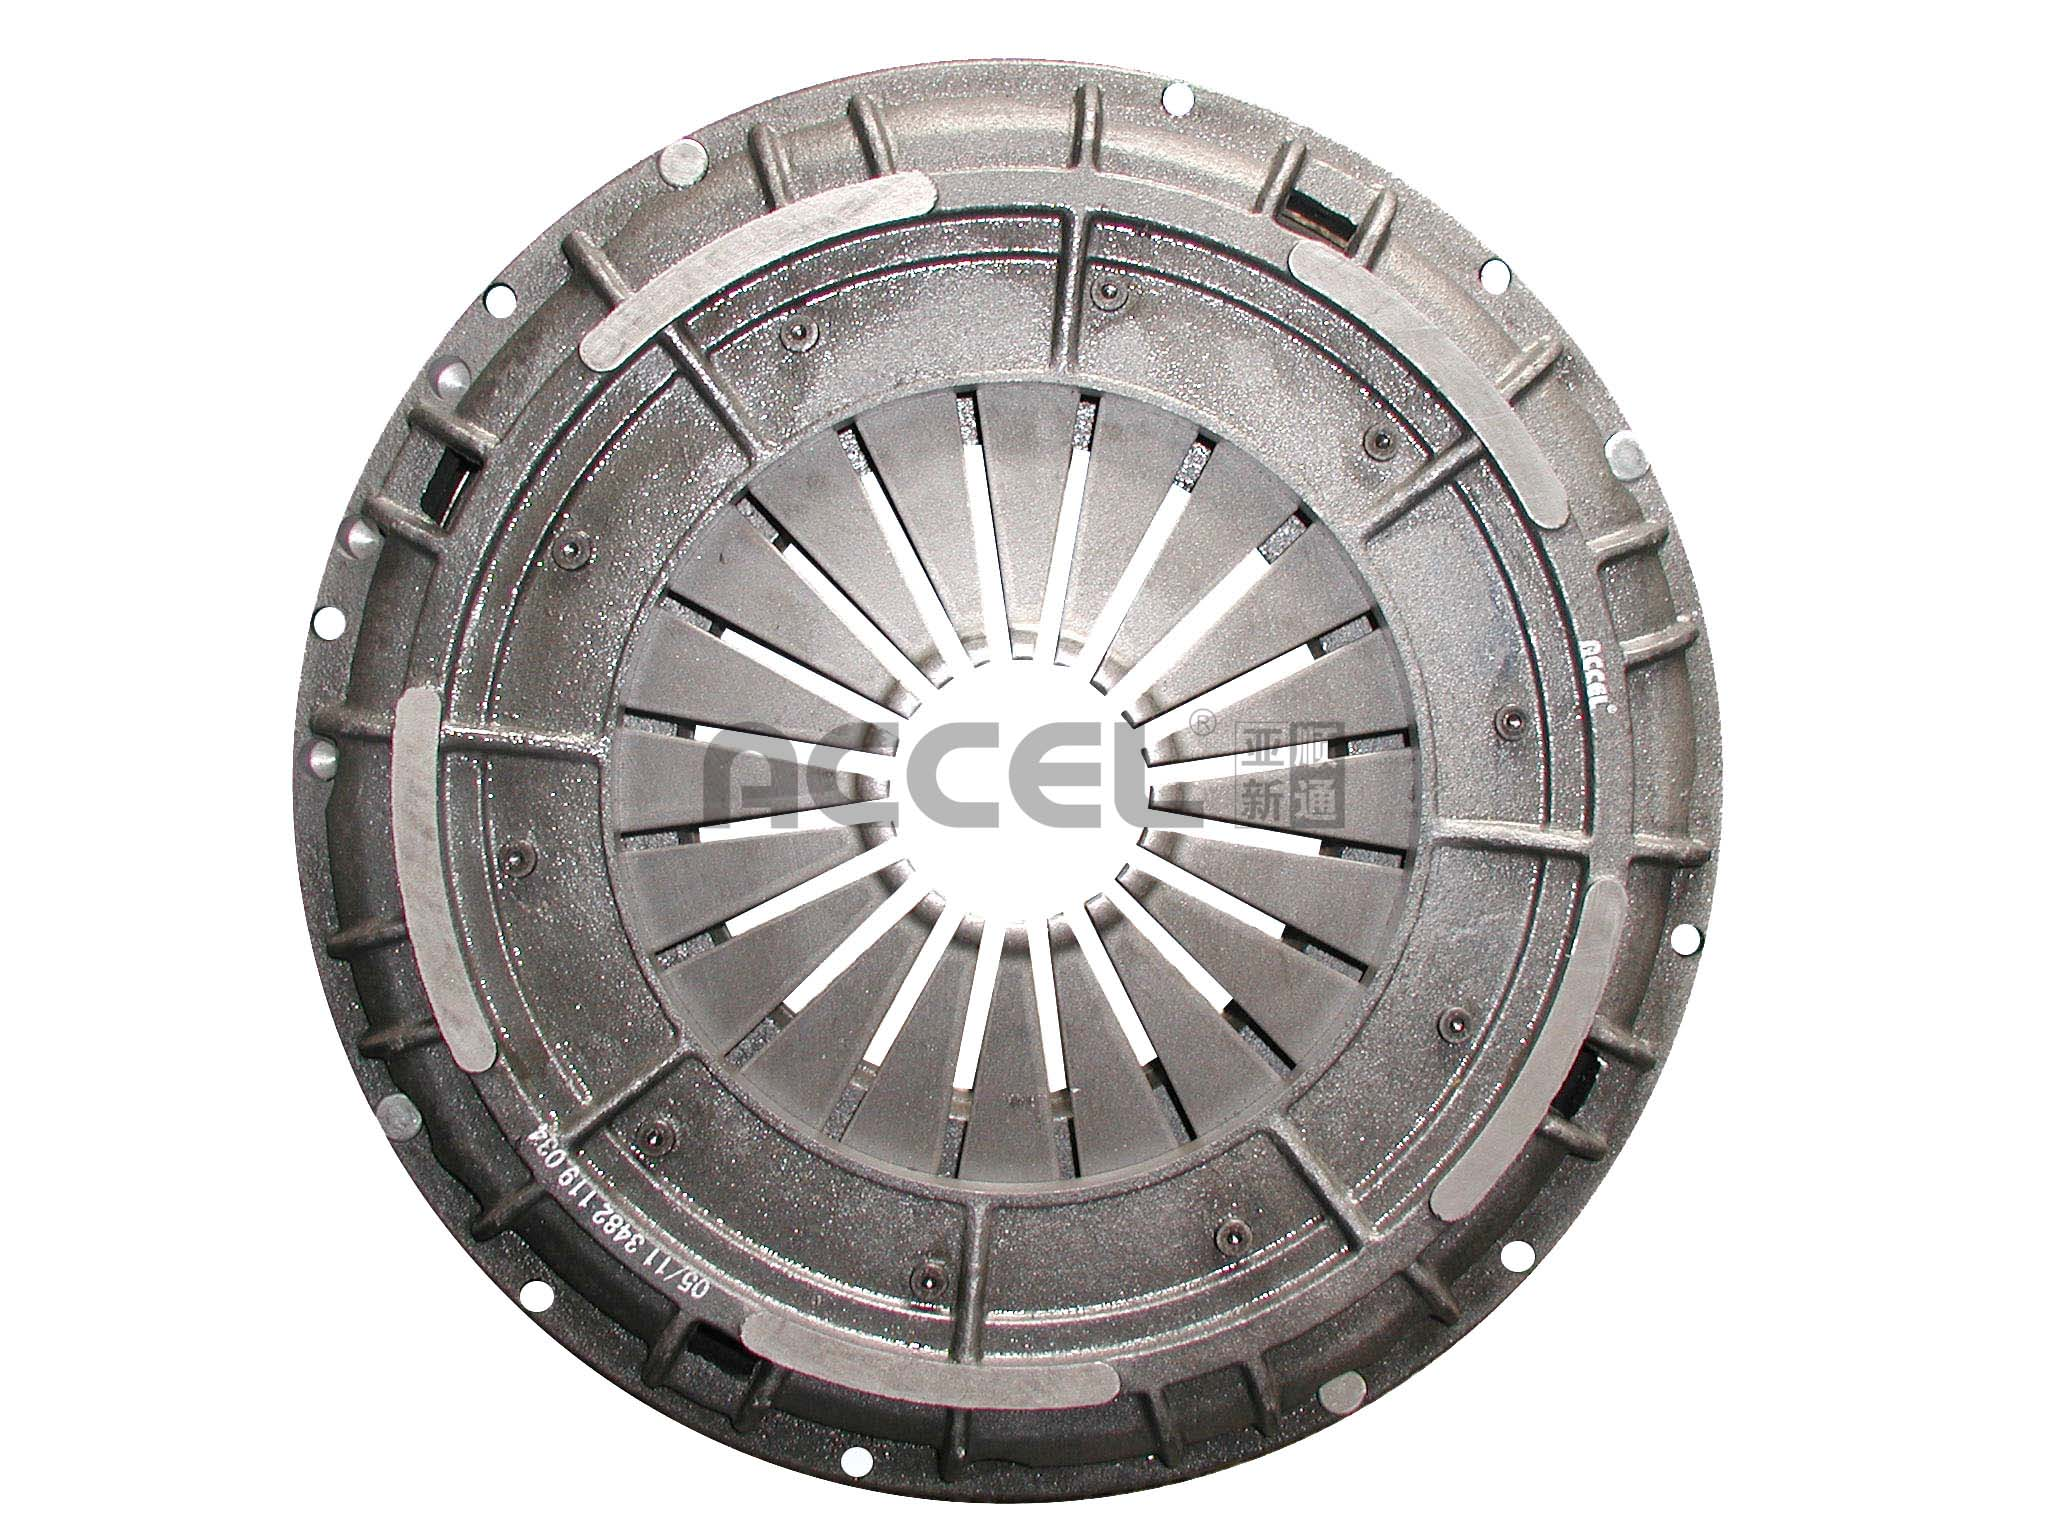 Clutch Cover/OE:3482 001 234/430*215*450/CSN-002/Scania/LY240